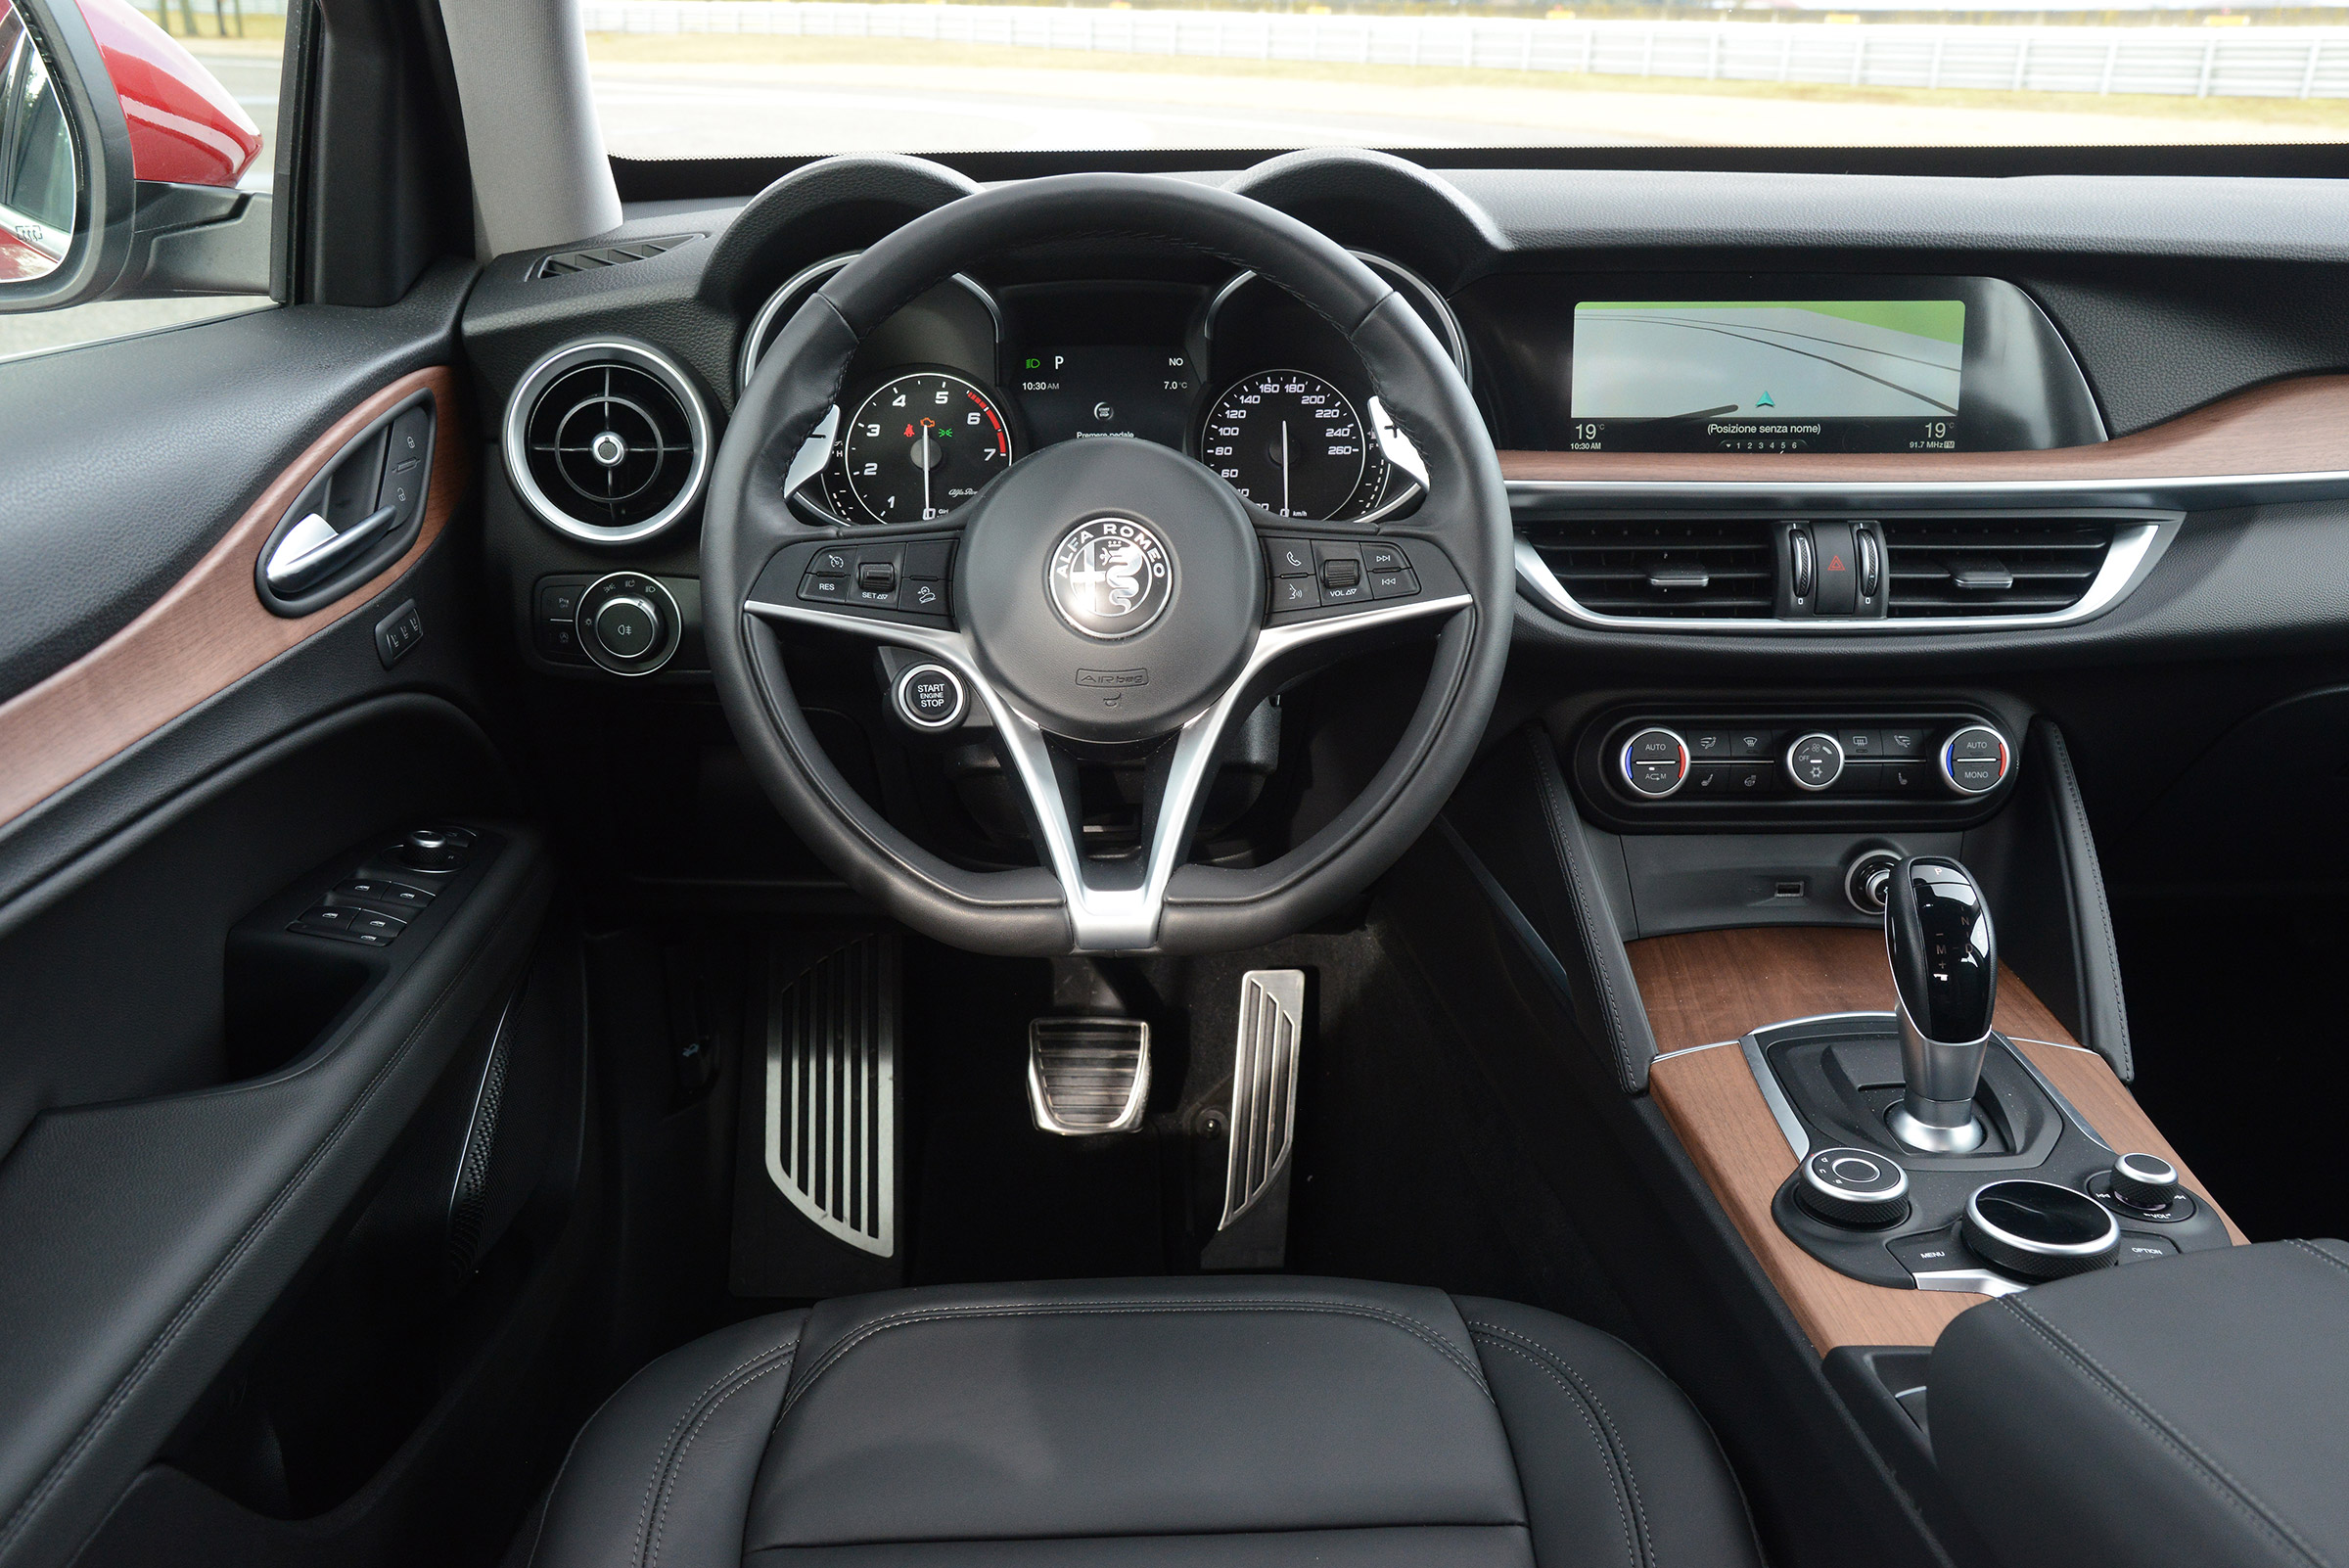 2017 Alfa Romeo Stelvio Interior Cockpit (Photo 9 of 23)